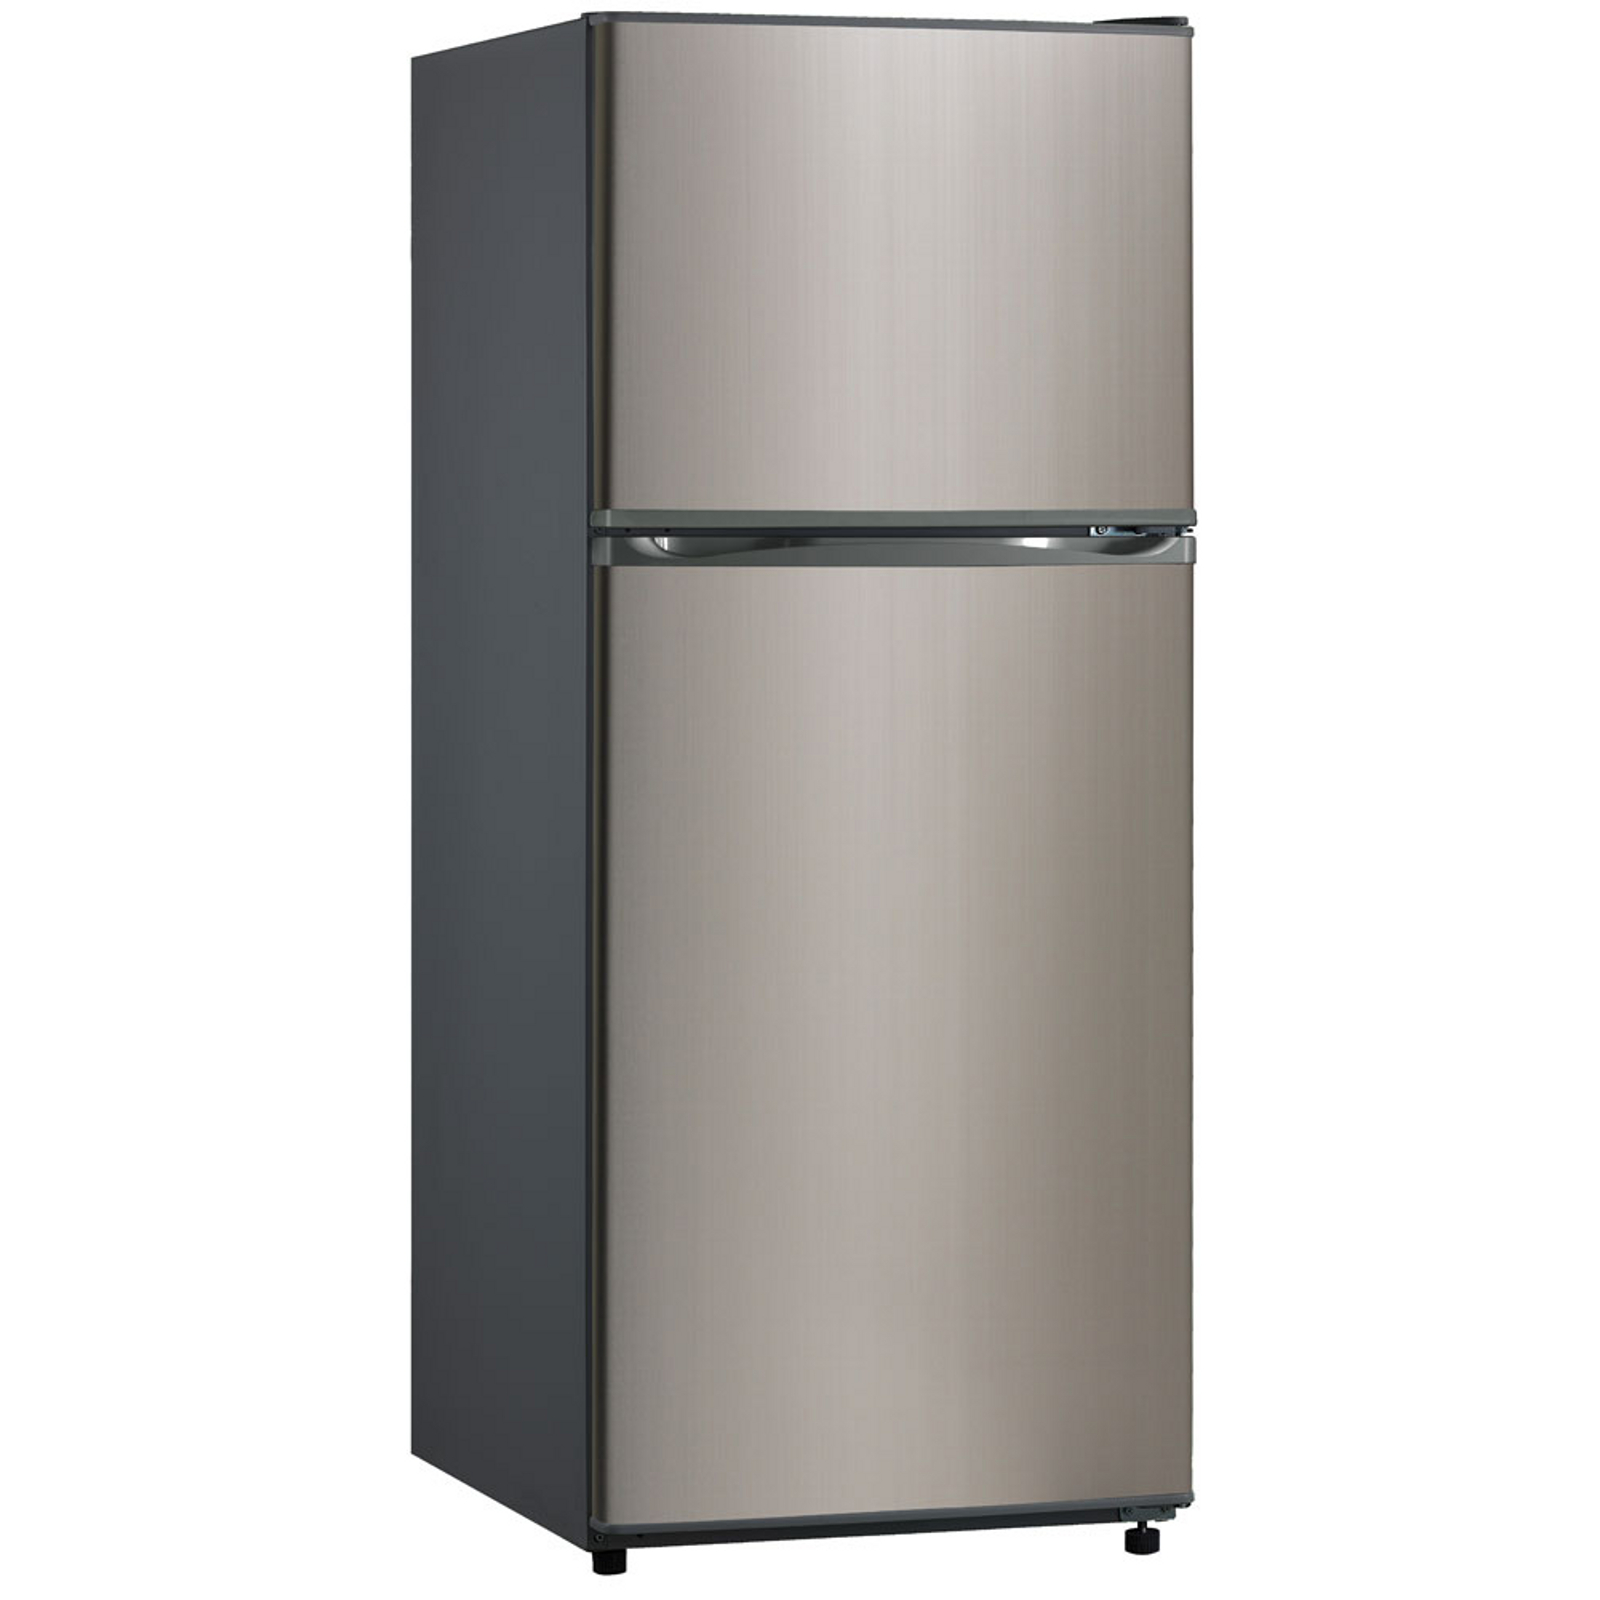 Equator-midea Rf423fw- 1220 Ss 12 Cu.ft. Apartment Refrigerator